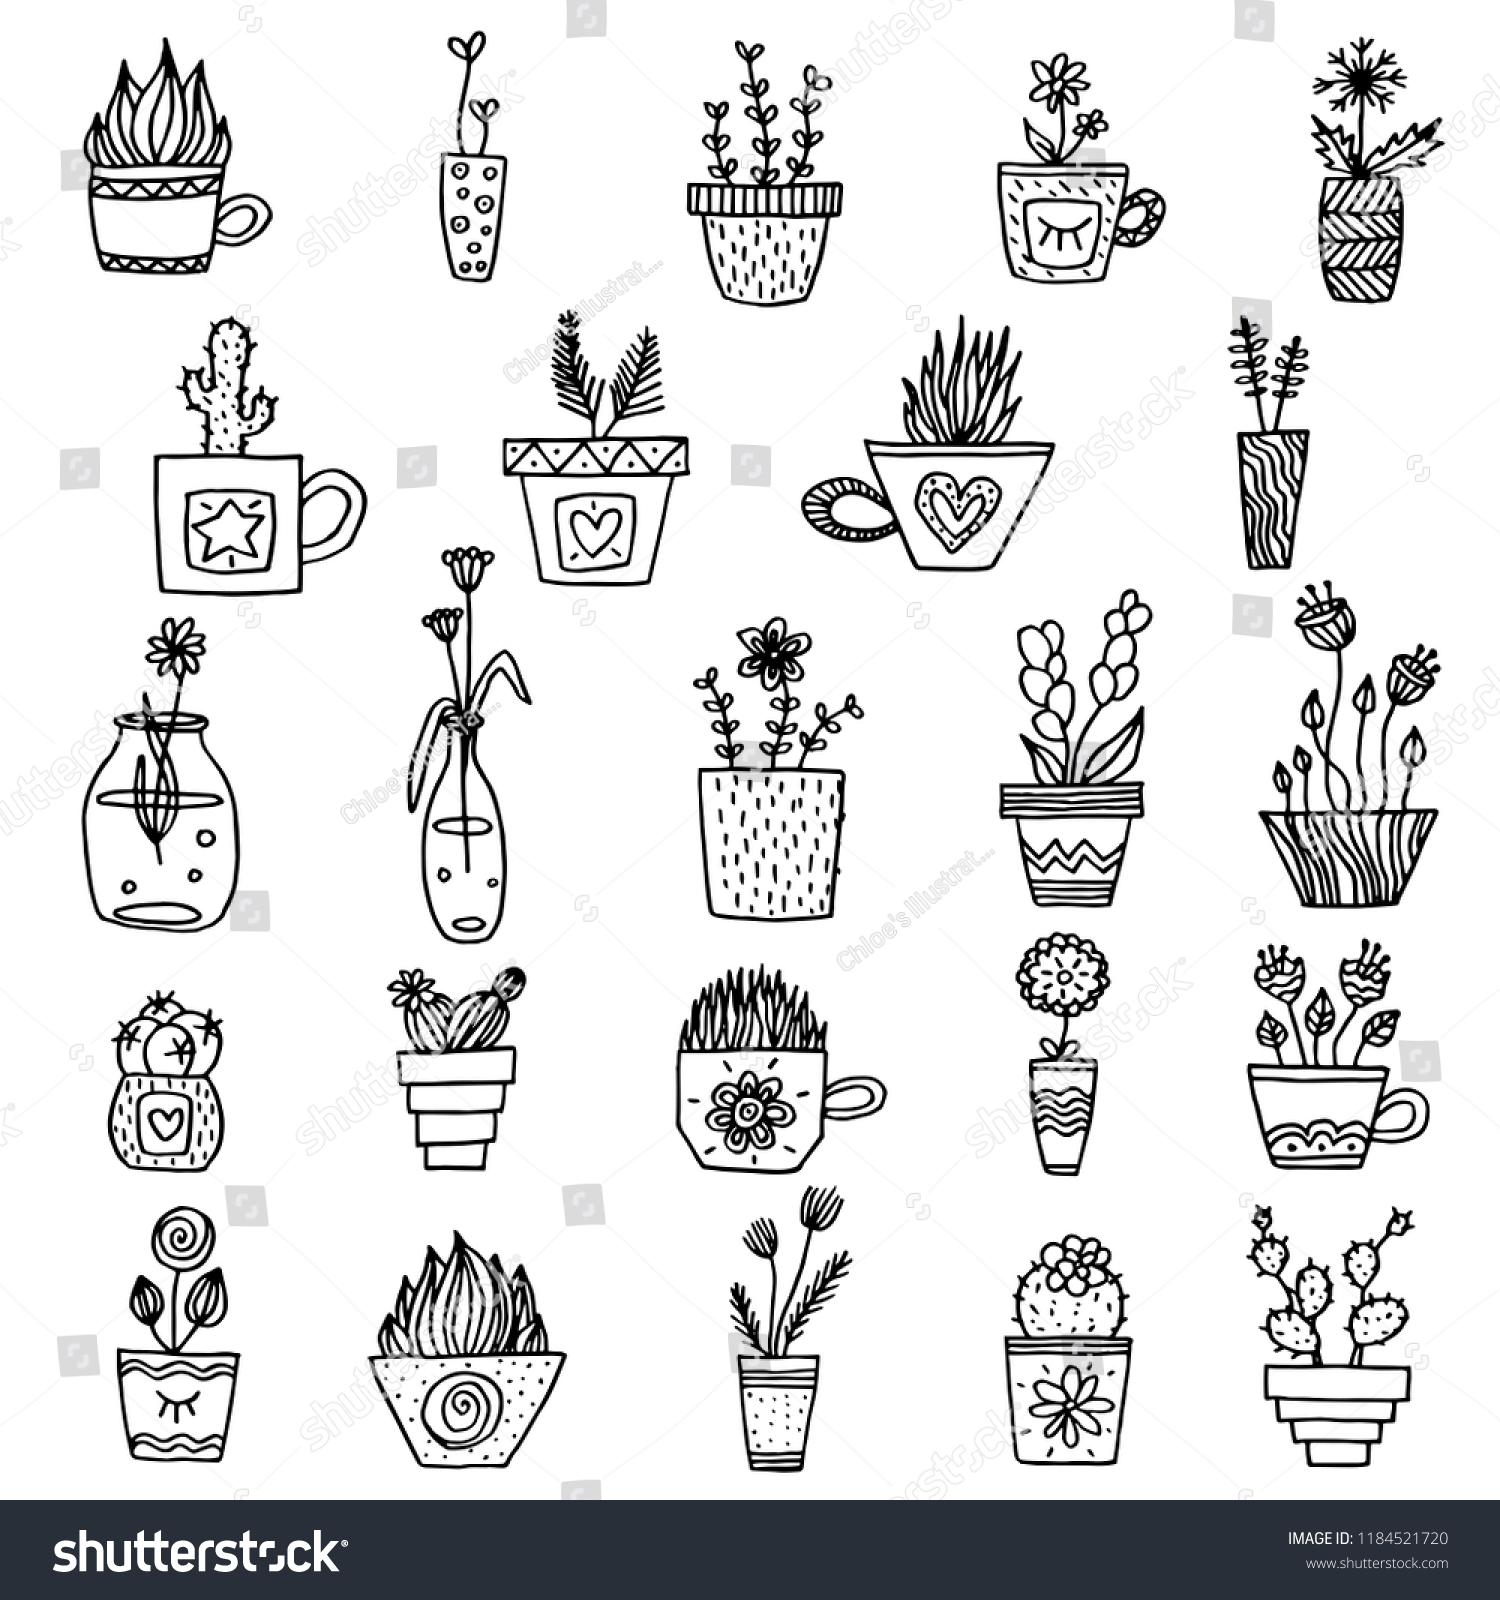 stock-vector-black-and-white-vector-plan